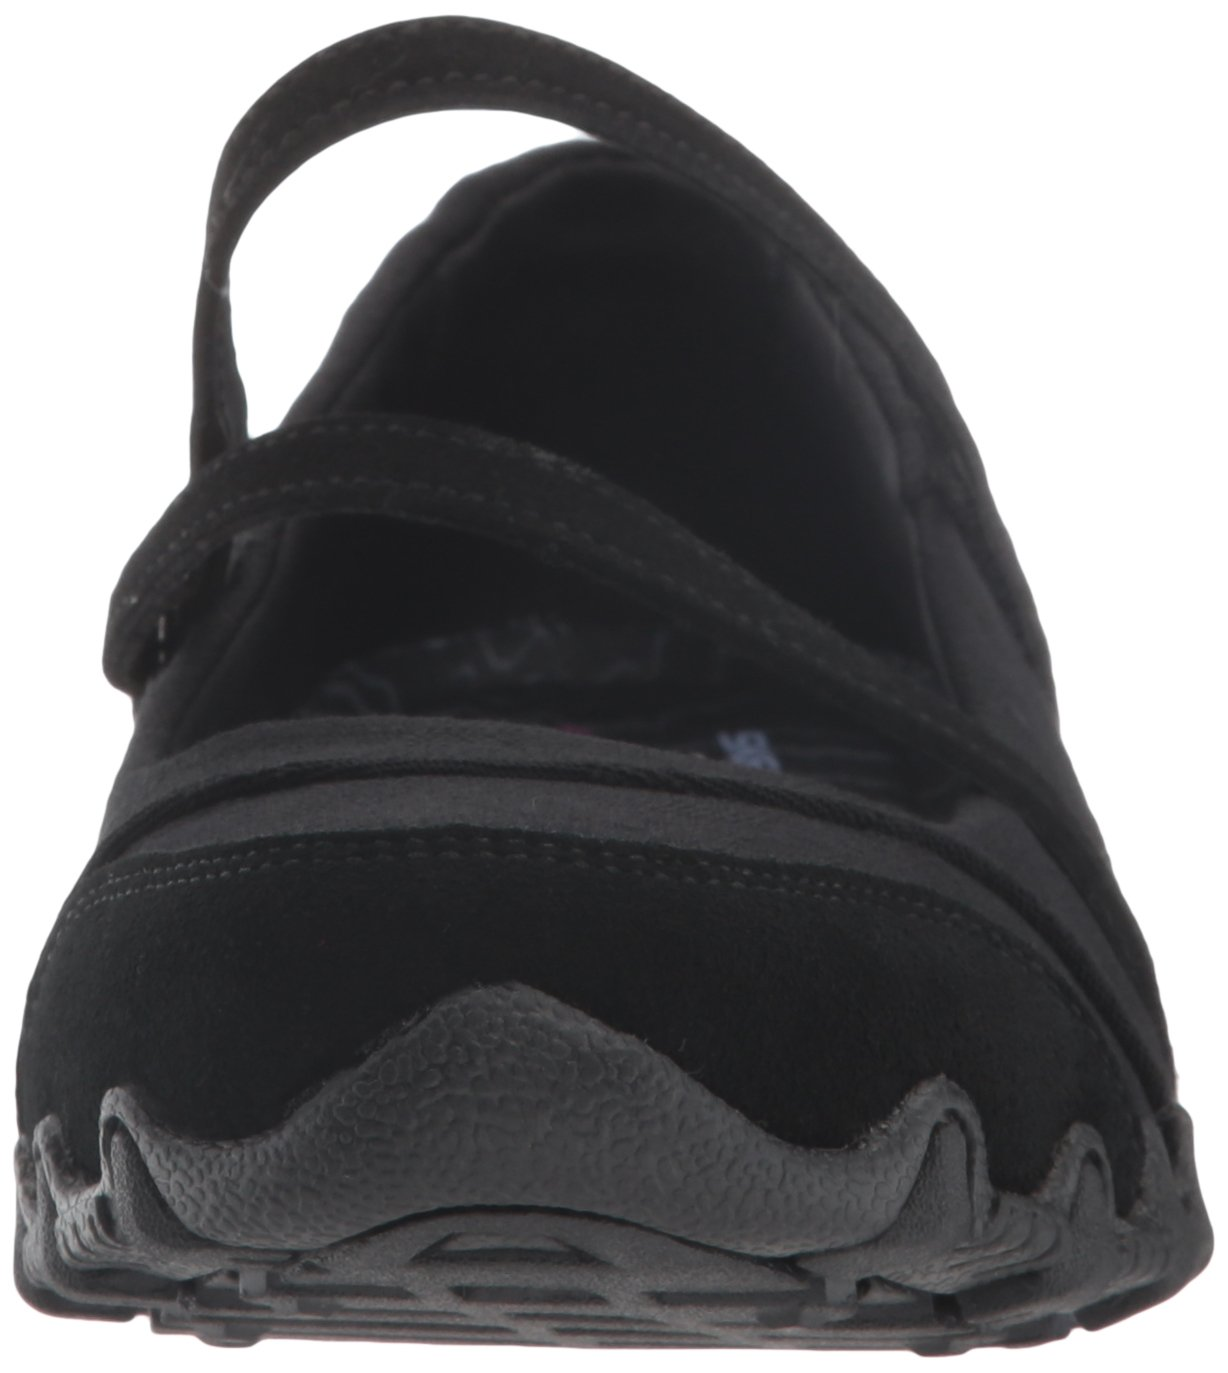 Skechers Women's Bikers -Fiesta Mary Jane Flat,7 M US,Black by Skechers (Image #4)